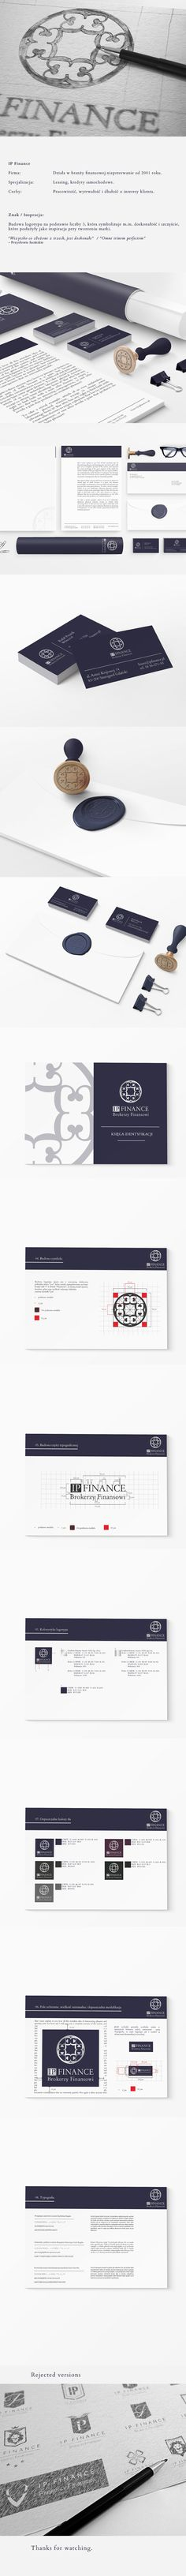 IP Finance Branding by Pawel Scharmach, via Behance